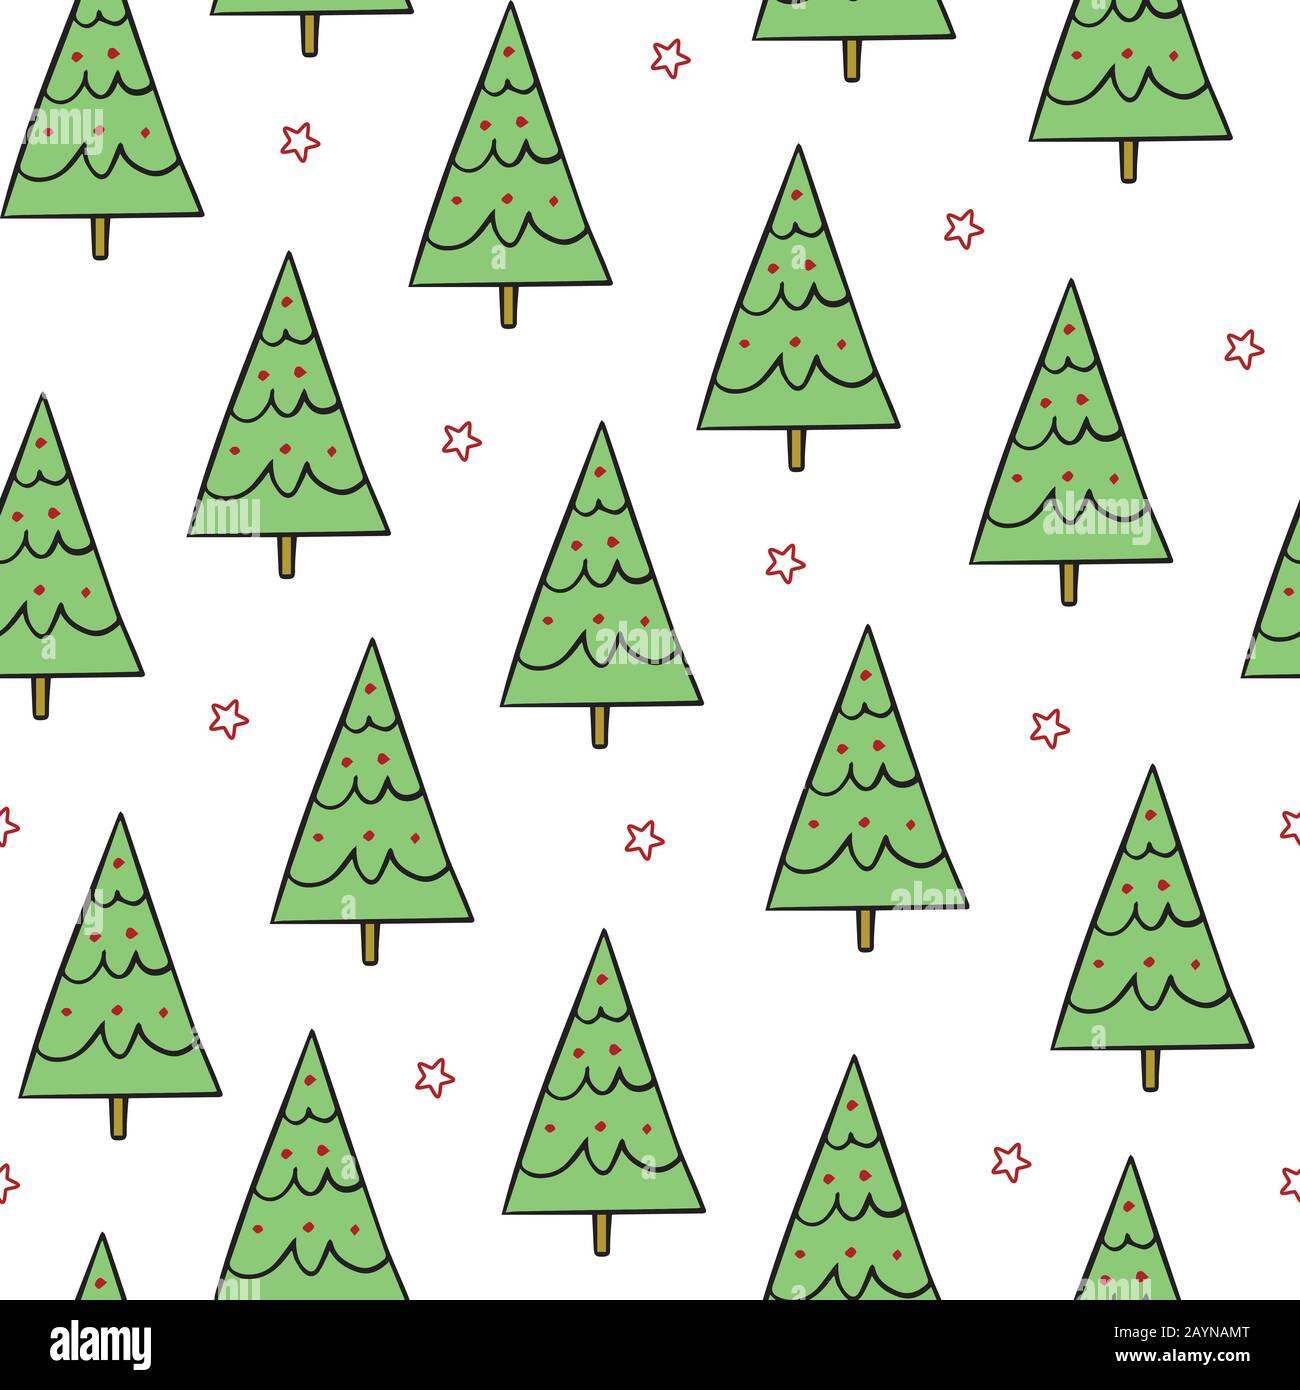 Simple Green Christmas Trees With Red Stars On White Background Seamless Repeat Christmas Holiday Pattern For Wrapping And Wallpaper Stock Vector Image Art Alamy